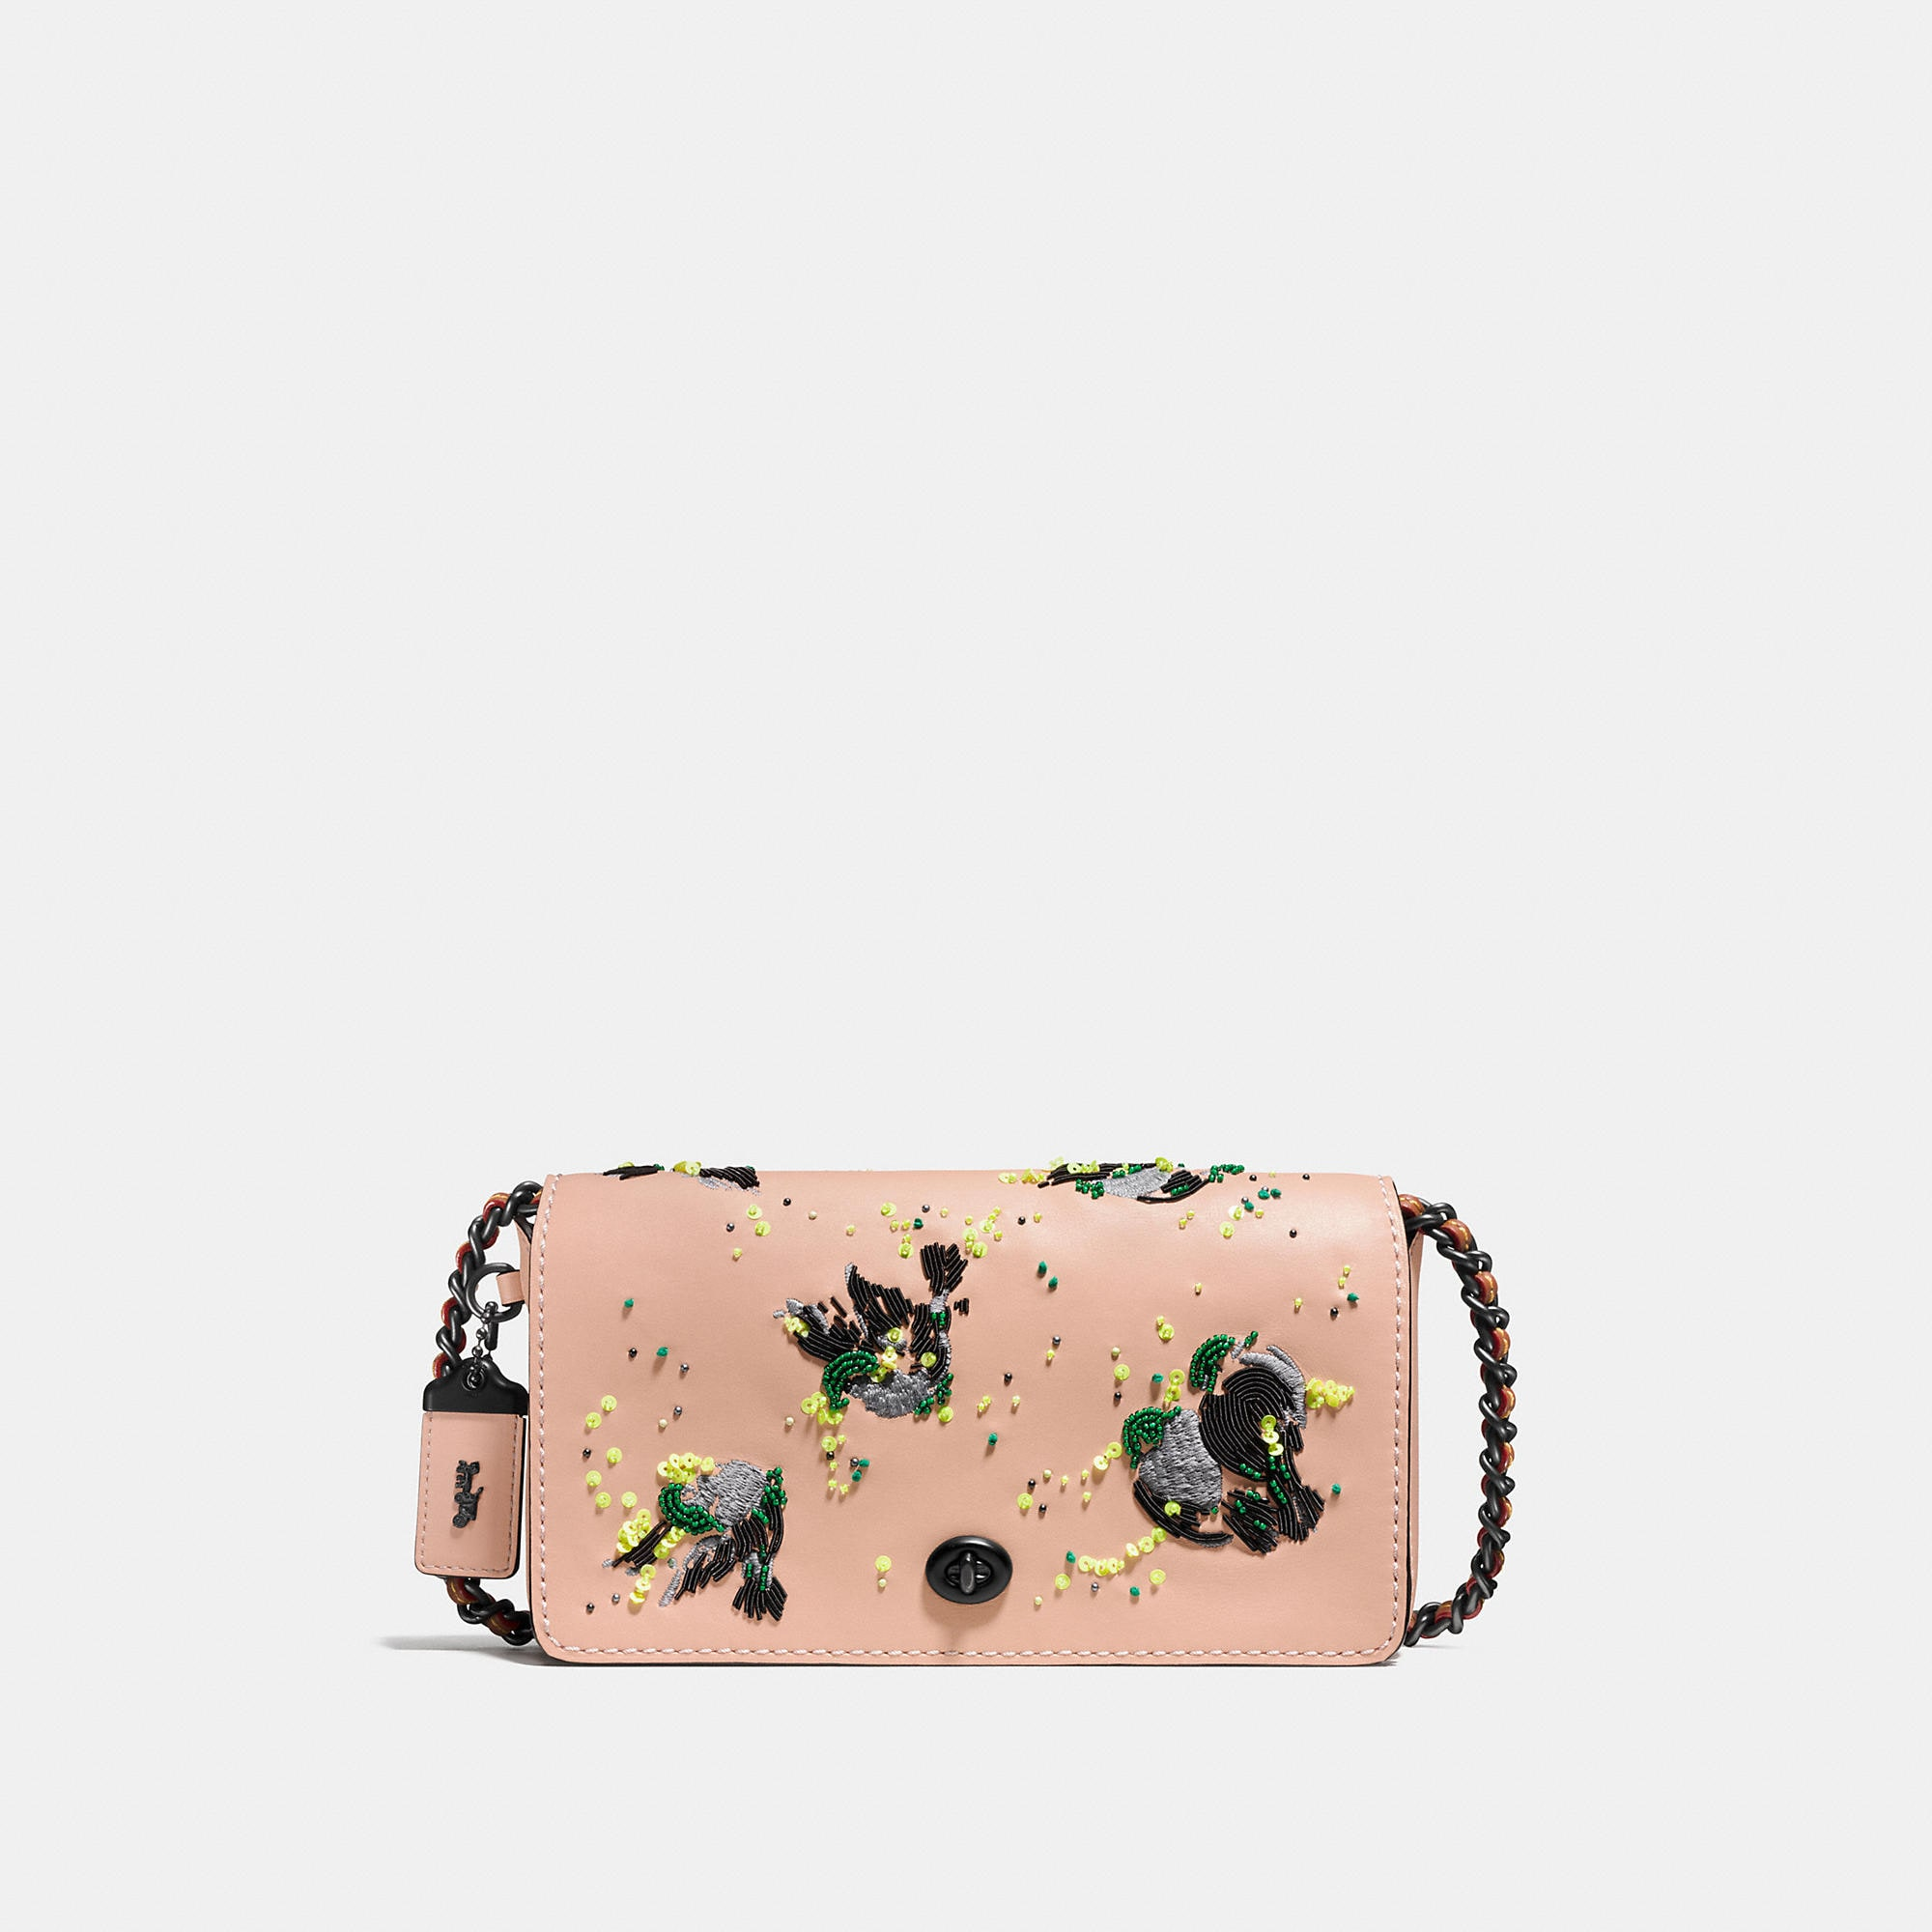 Coach Dinky Crossbody In Glovetanned Leather With Meadowlark Embellishment